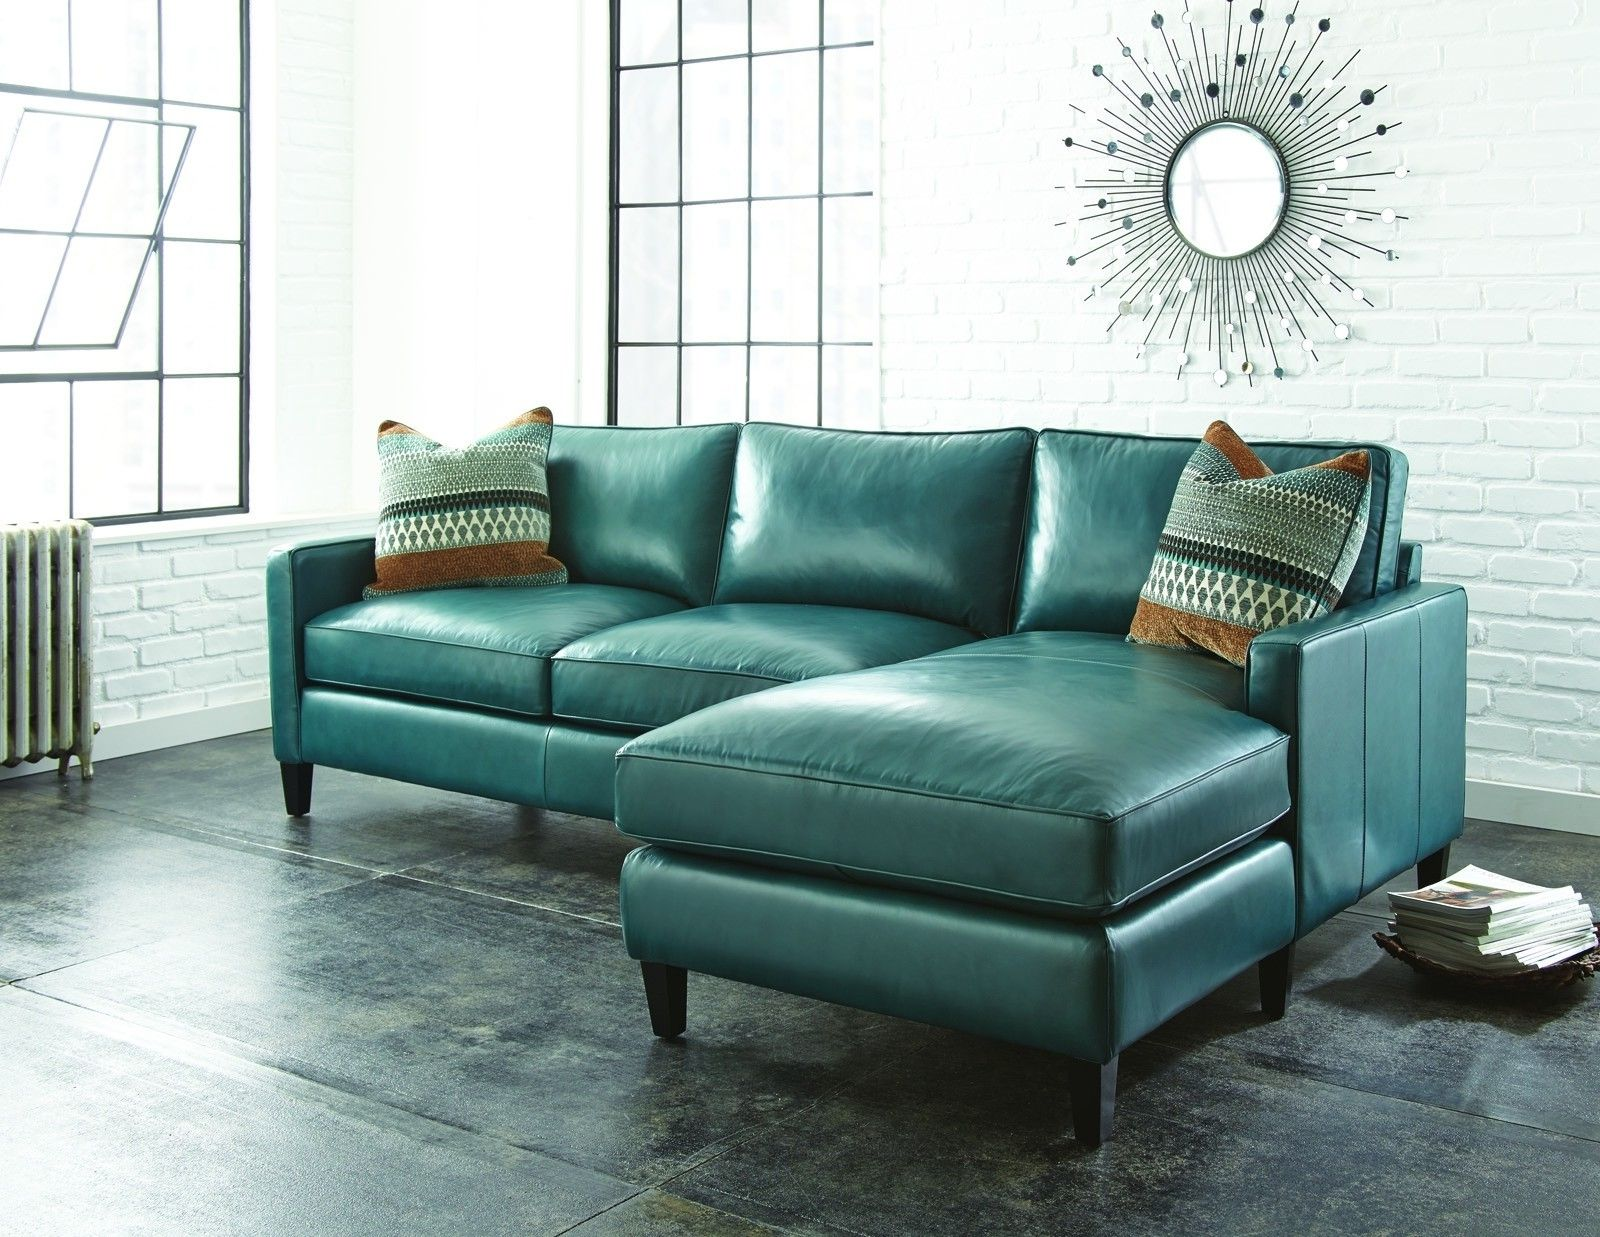 Teal Leather Sectional Sofa Blue Leather Sofa Living Room